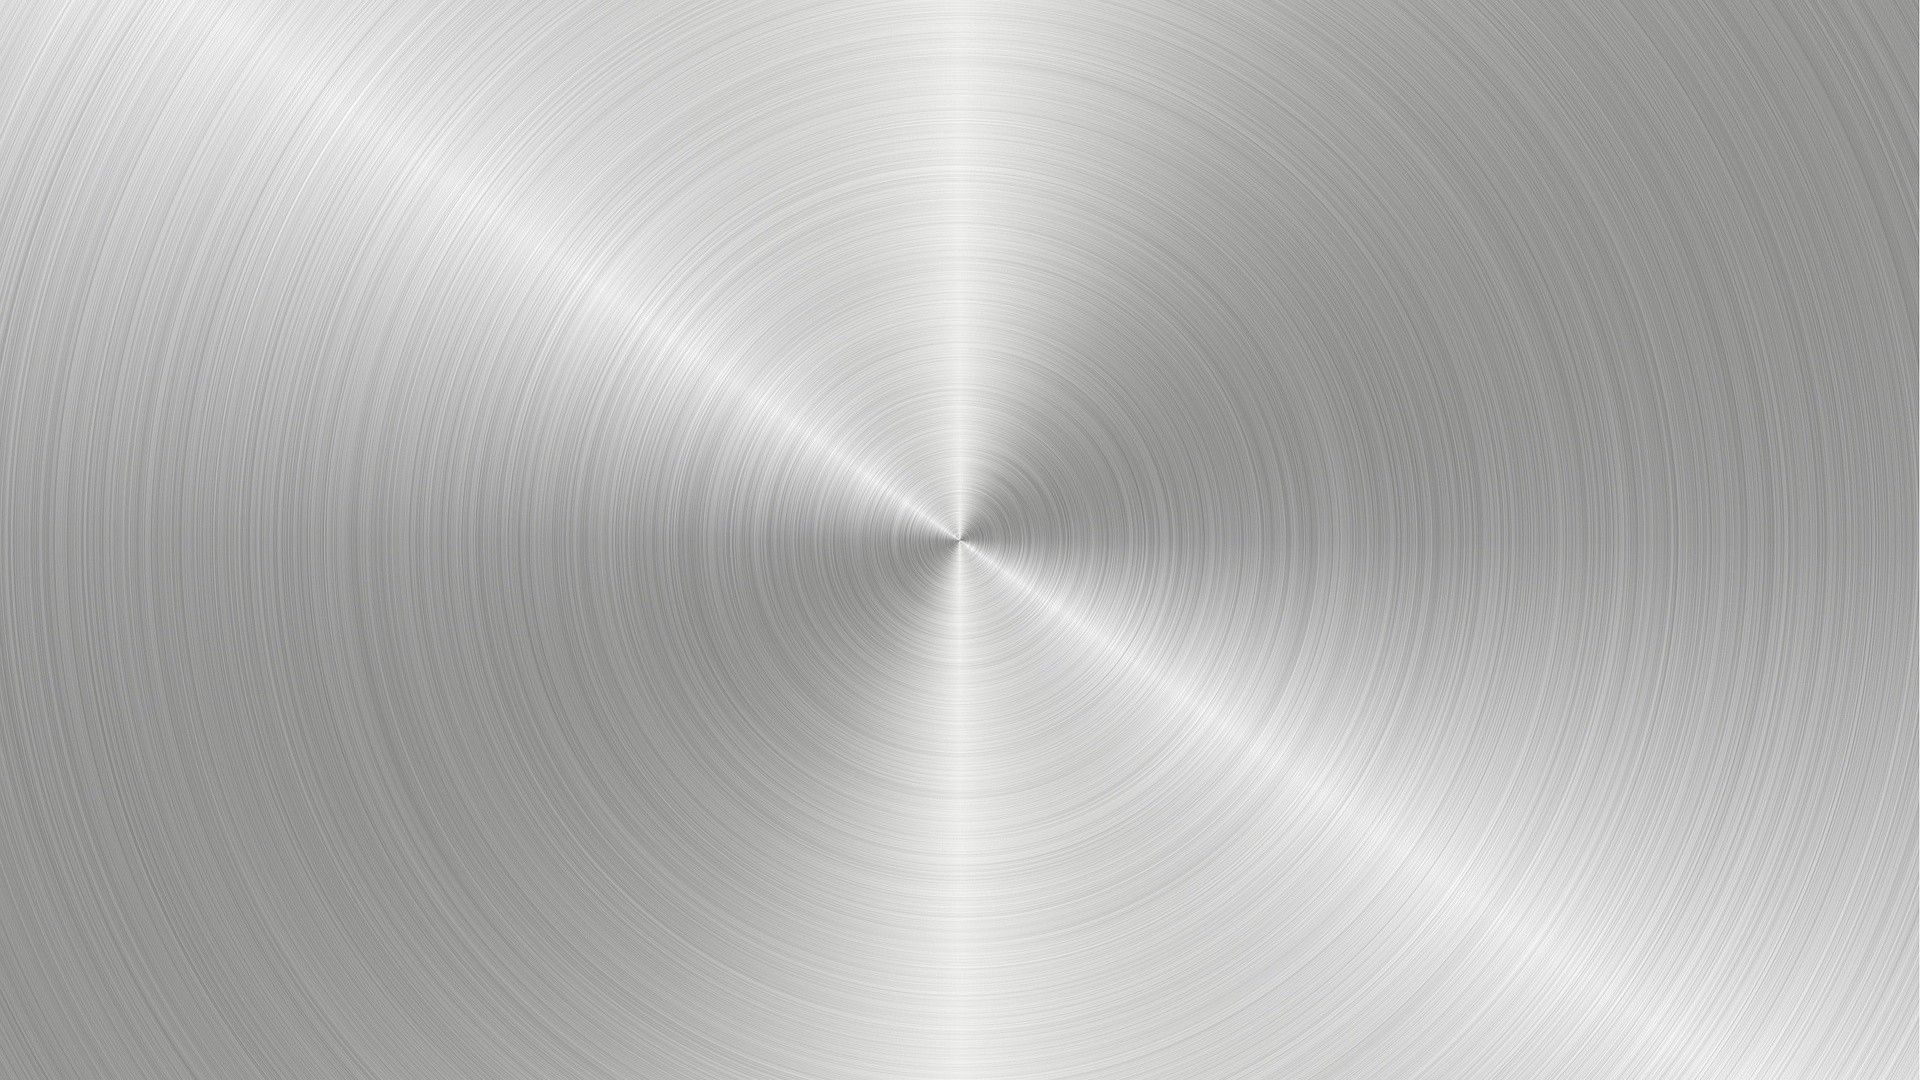 Stainless Steel Wallpaper Image